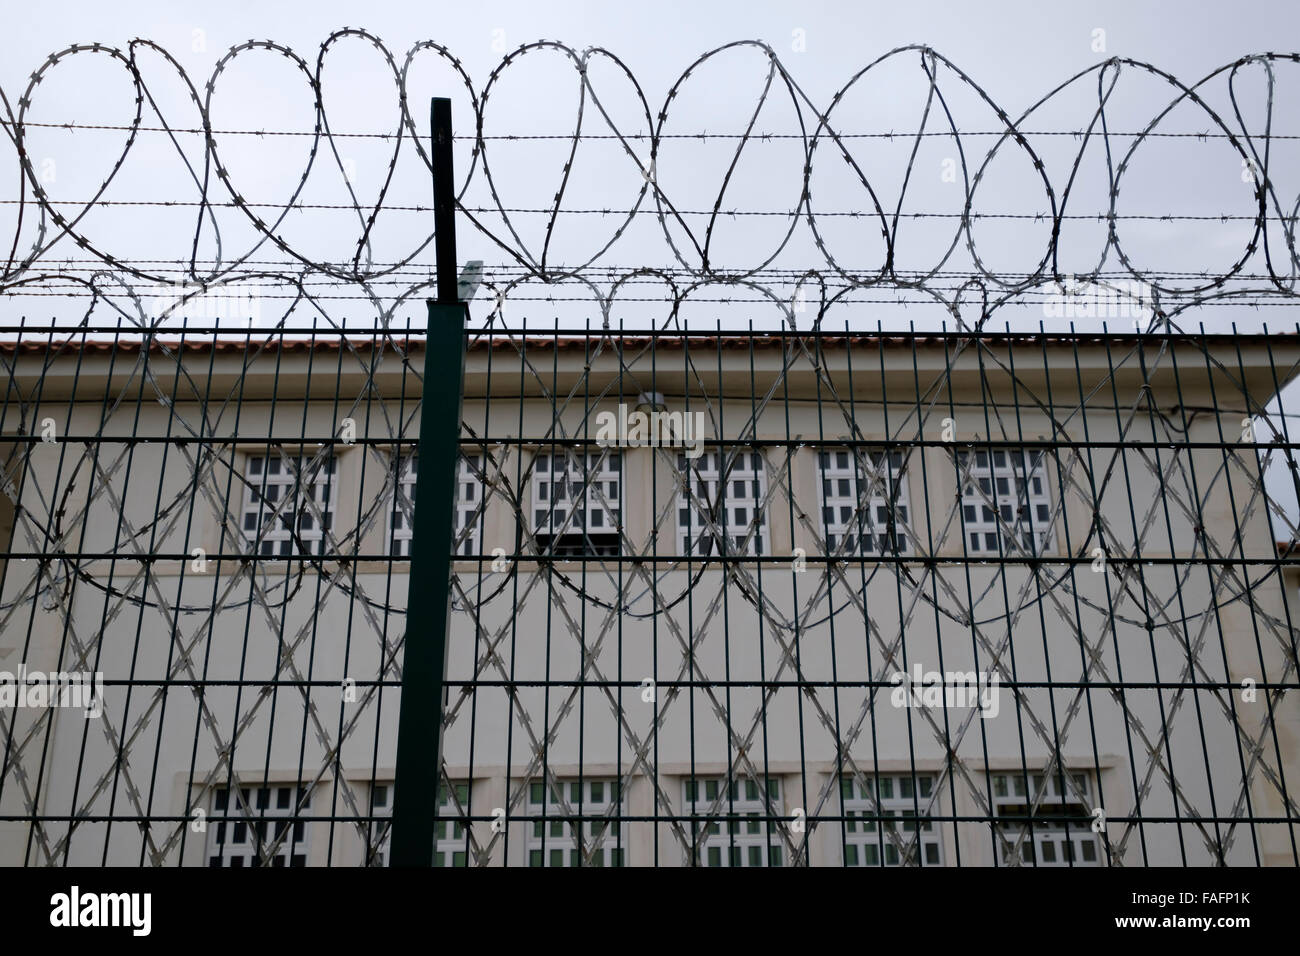 Prison walls with barbwire - Stock Image